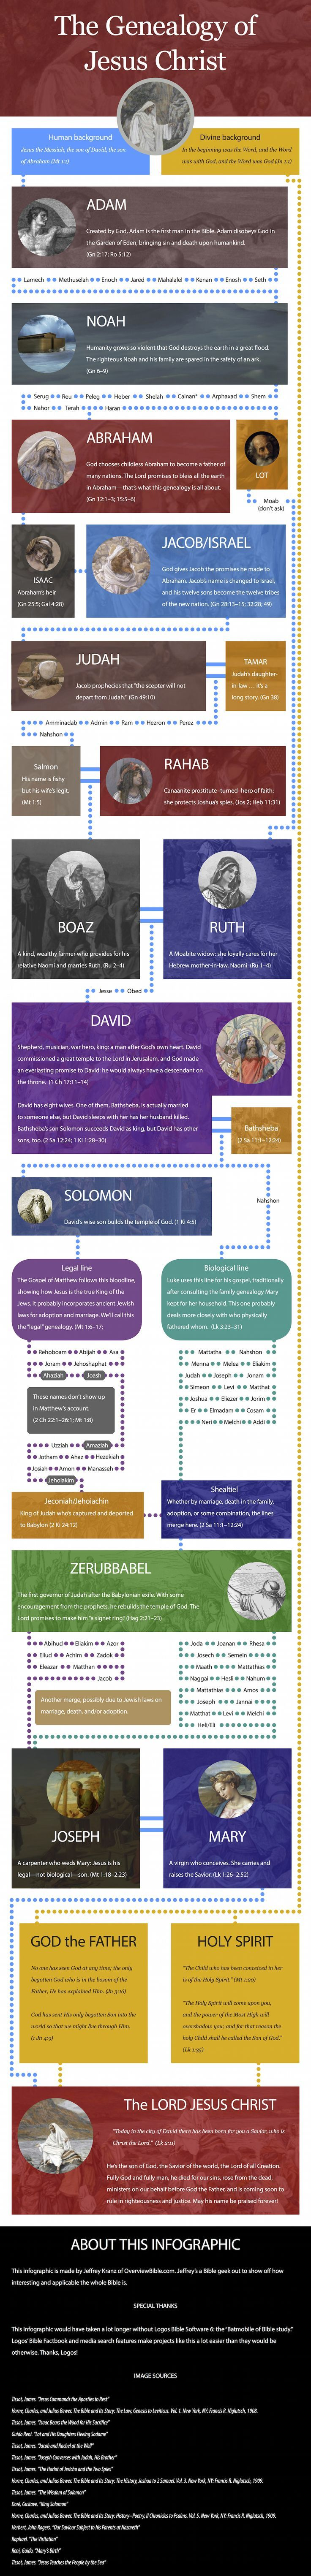 EXCLUSIVE: An Amazing Genealogy of Jesus Infographic (and What It Means for XMas)�|�Zach J. Hoag